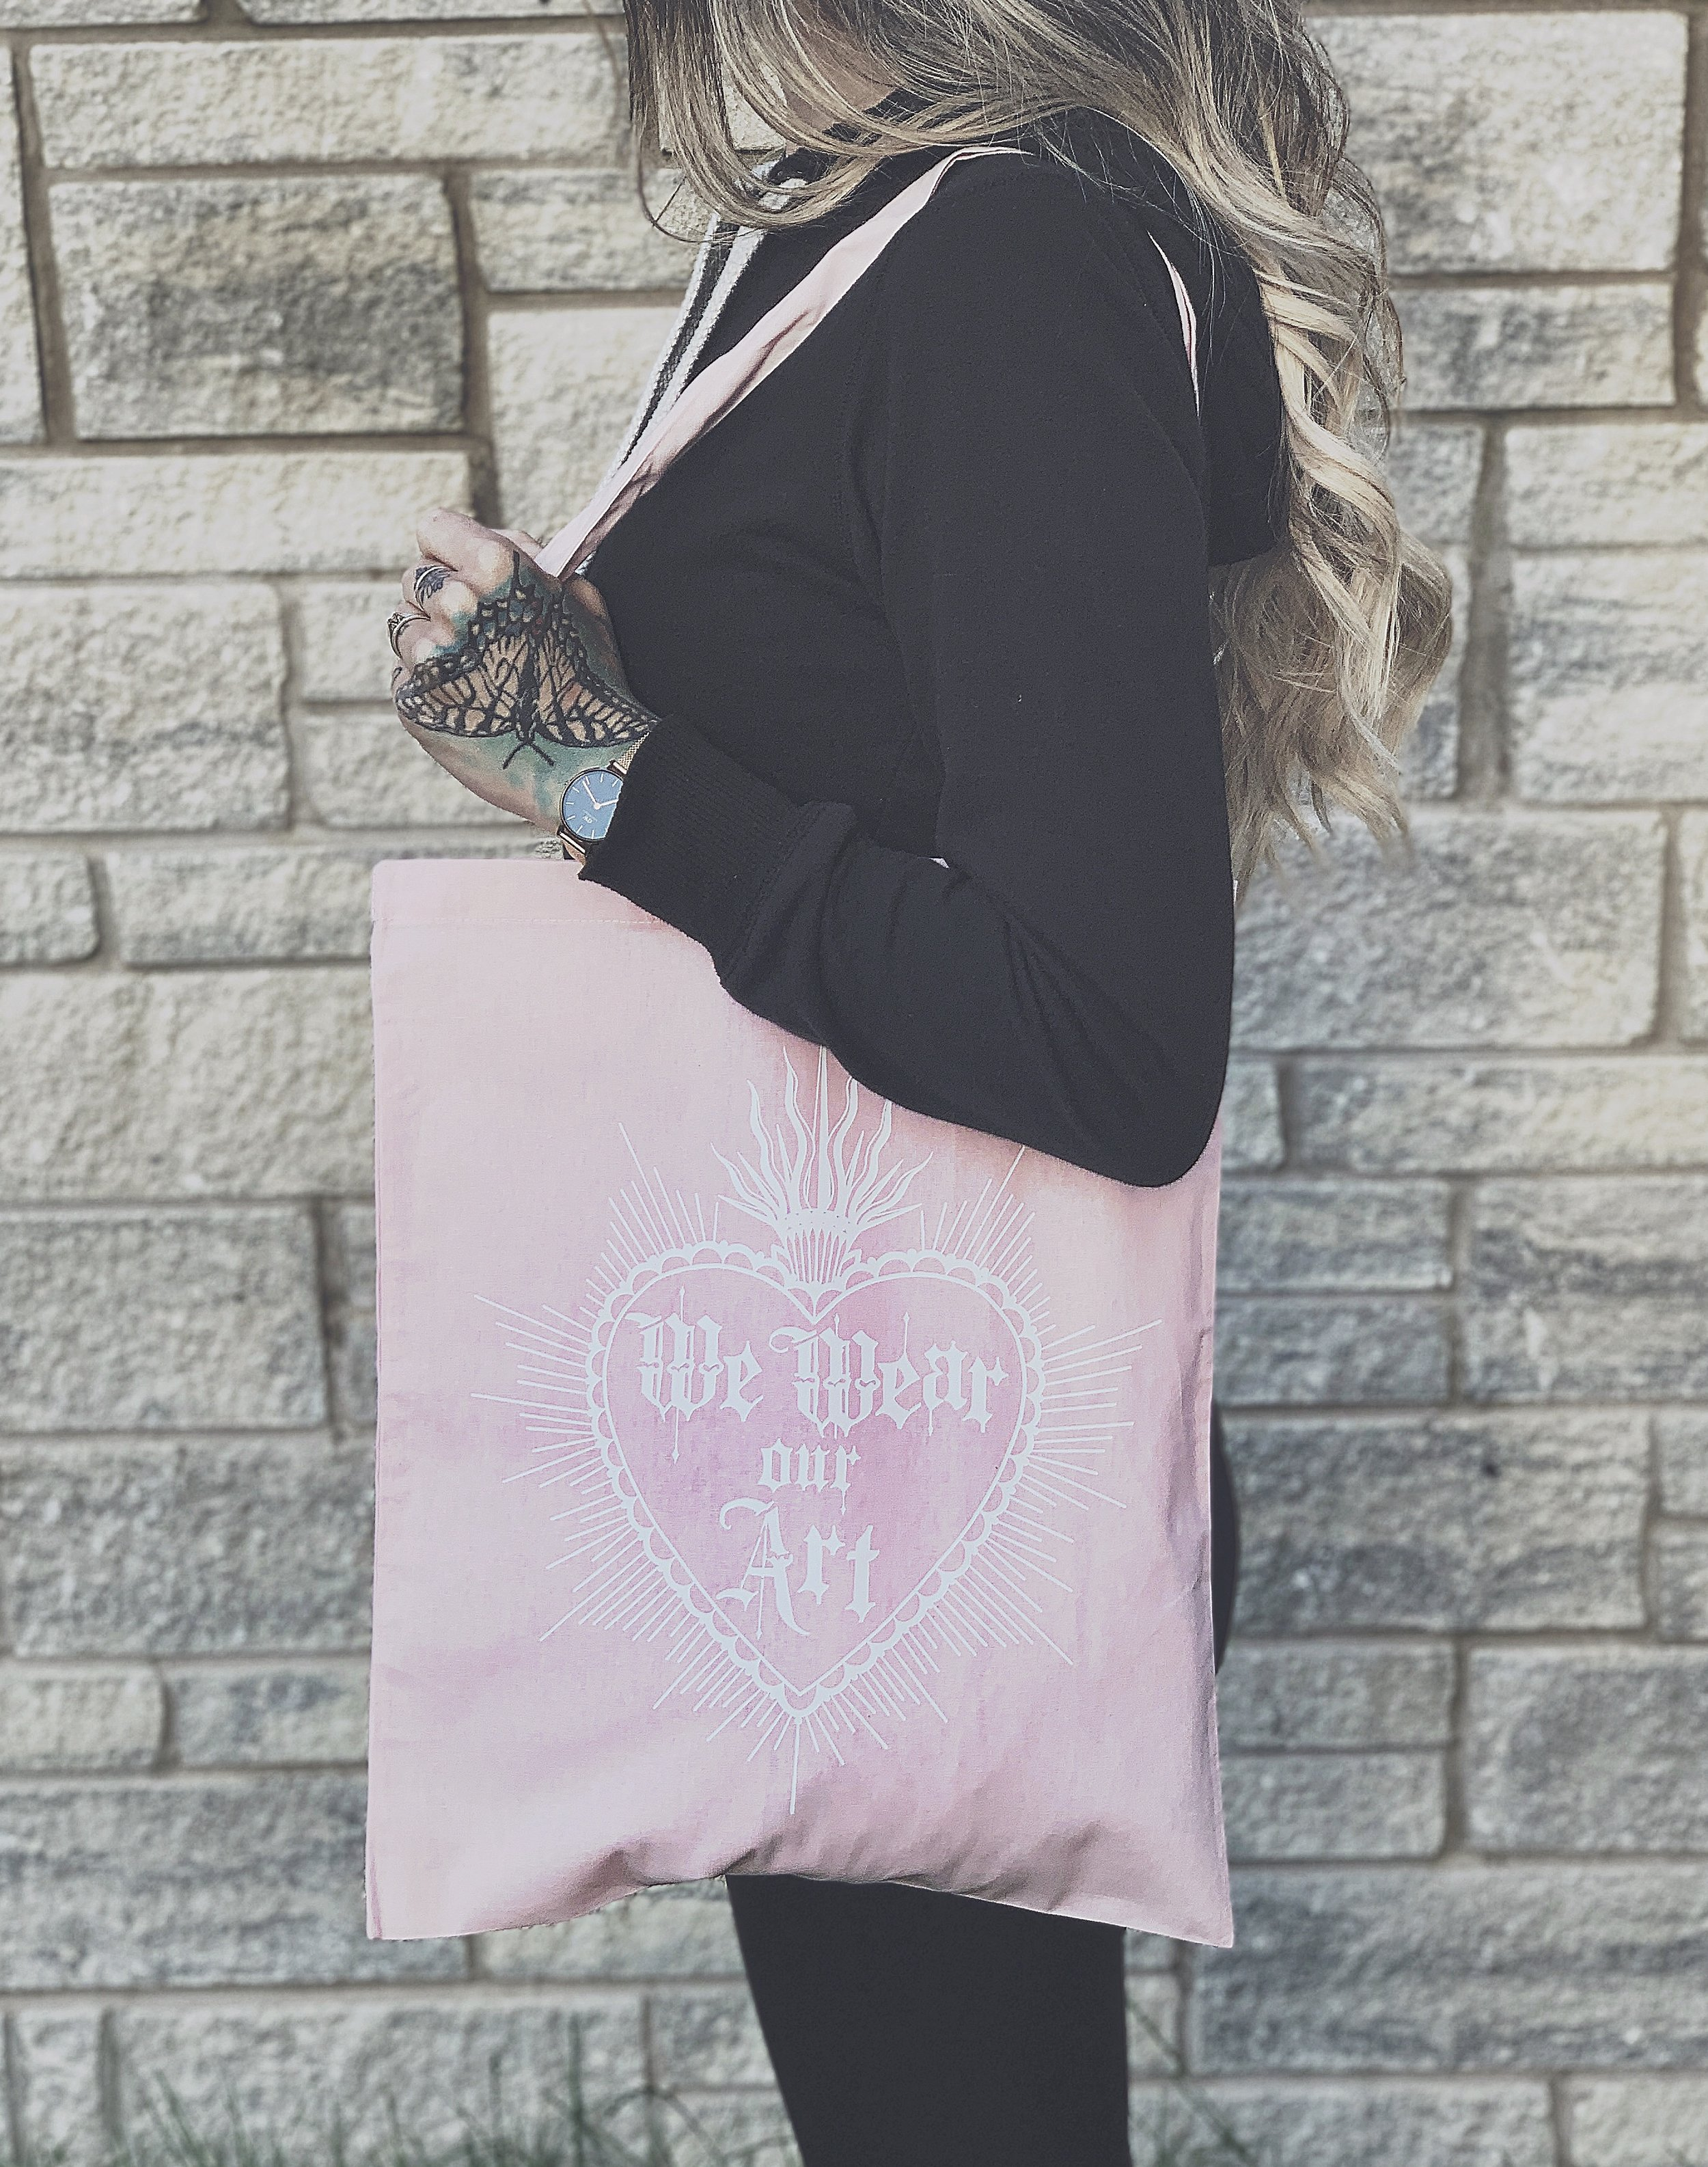 We Wear Our Art - Tote Bag  (Pink)  £10.00